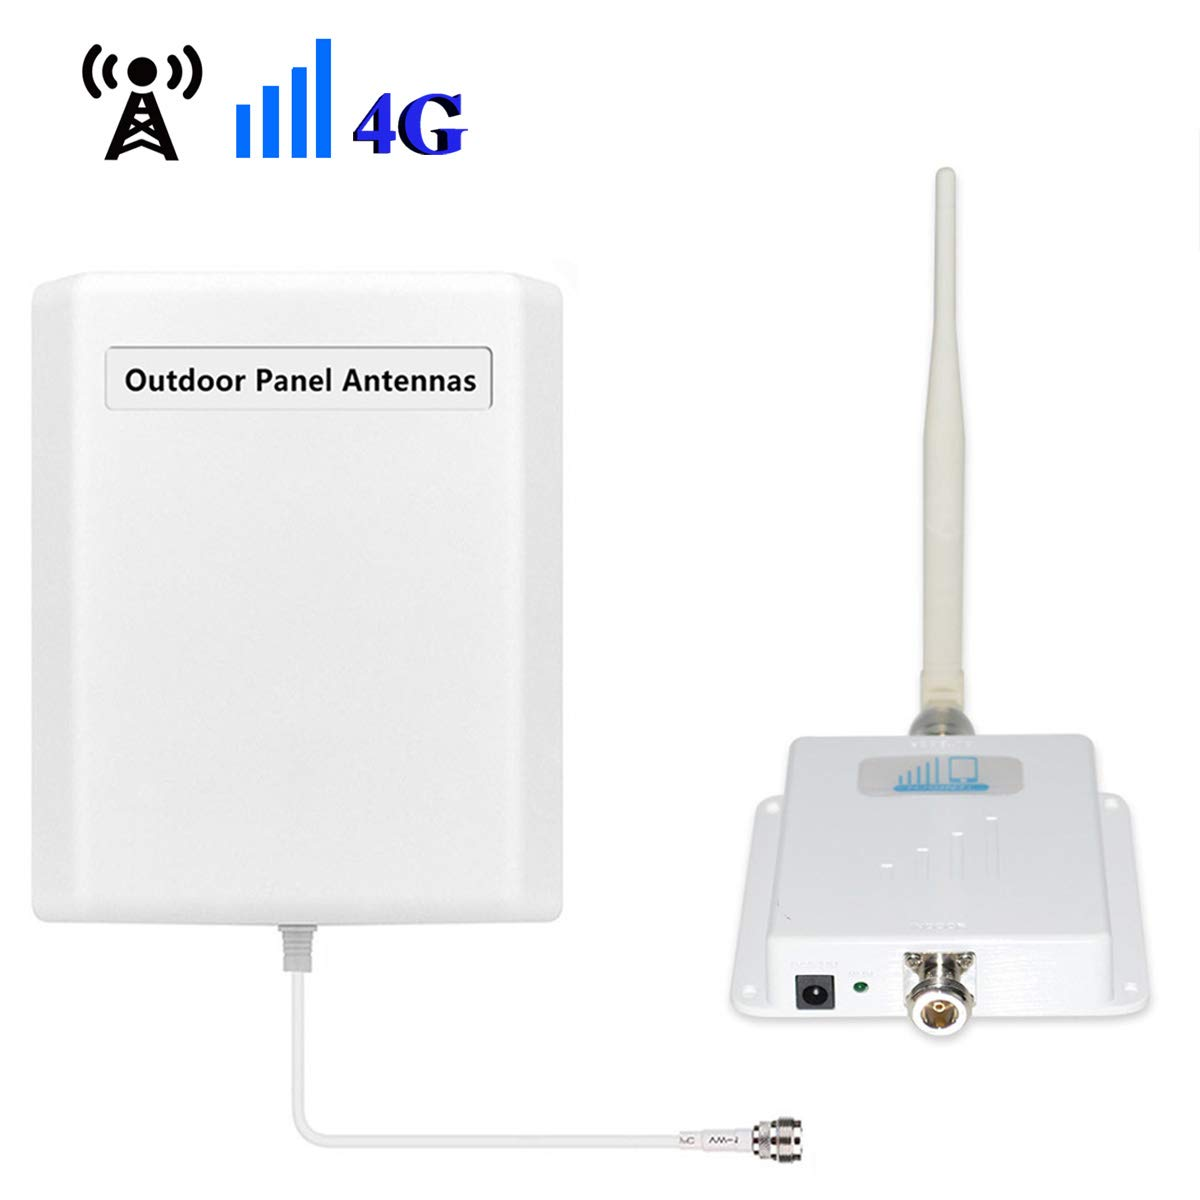 d773051b671141 Verizon Cell Phone Signal Booster 4G LTE Signal Boosters HJCINTL FDD High  Gain 700MHz Band13 Cell Signal Amplifier Mobile Phone Signal Repeater  Booster Kits